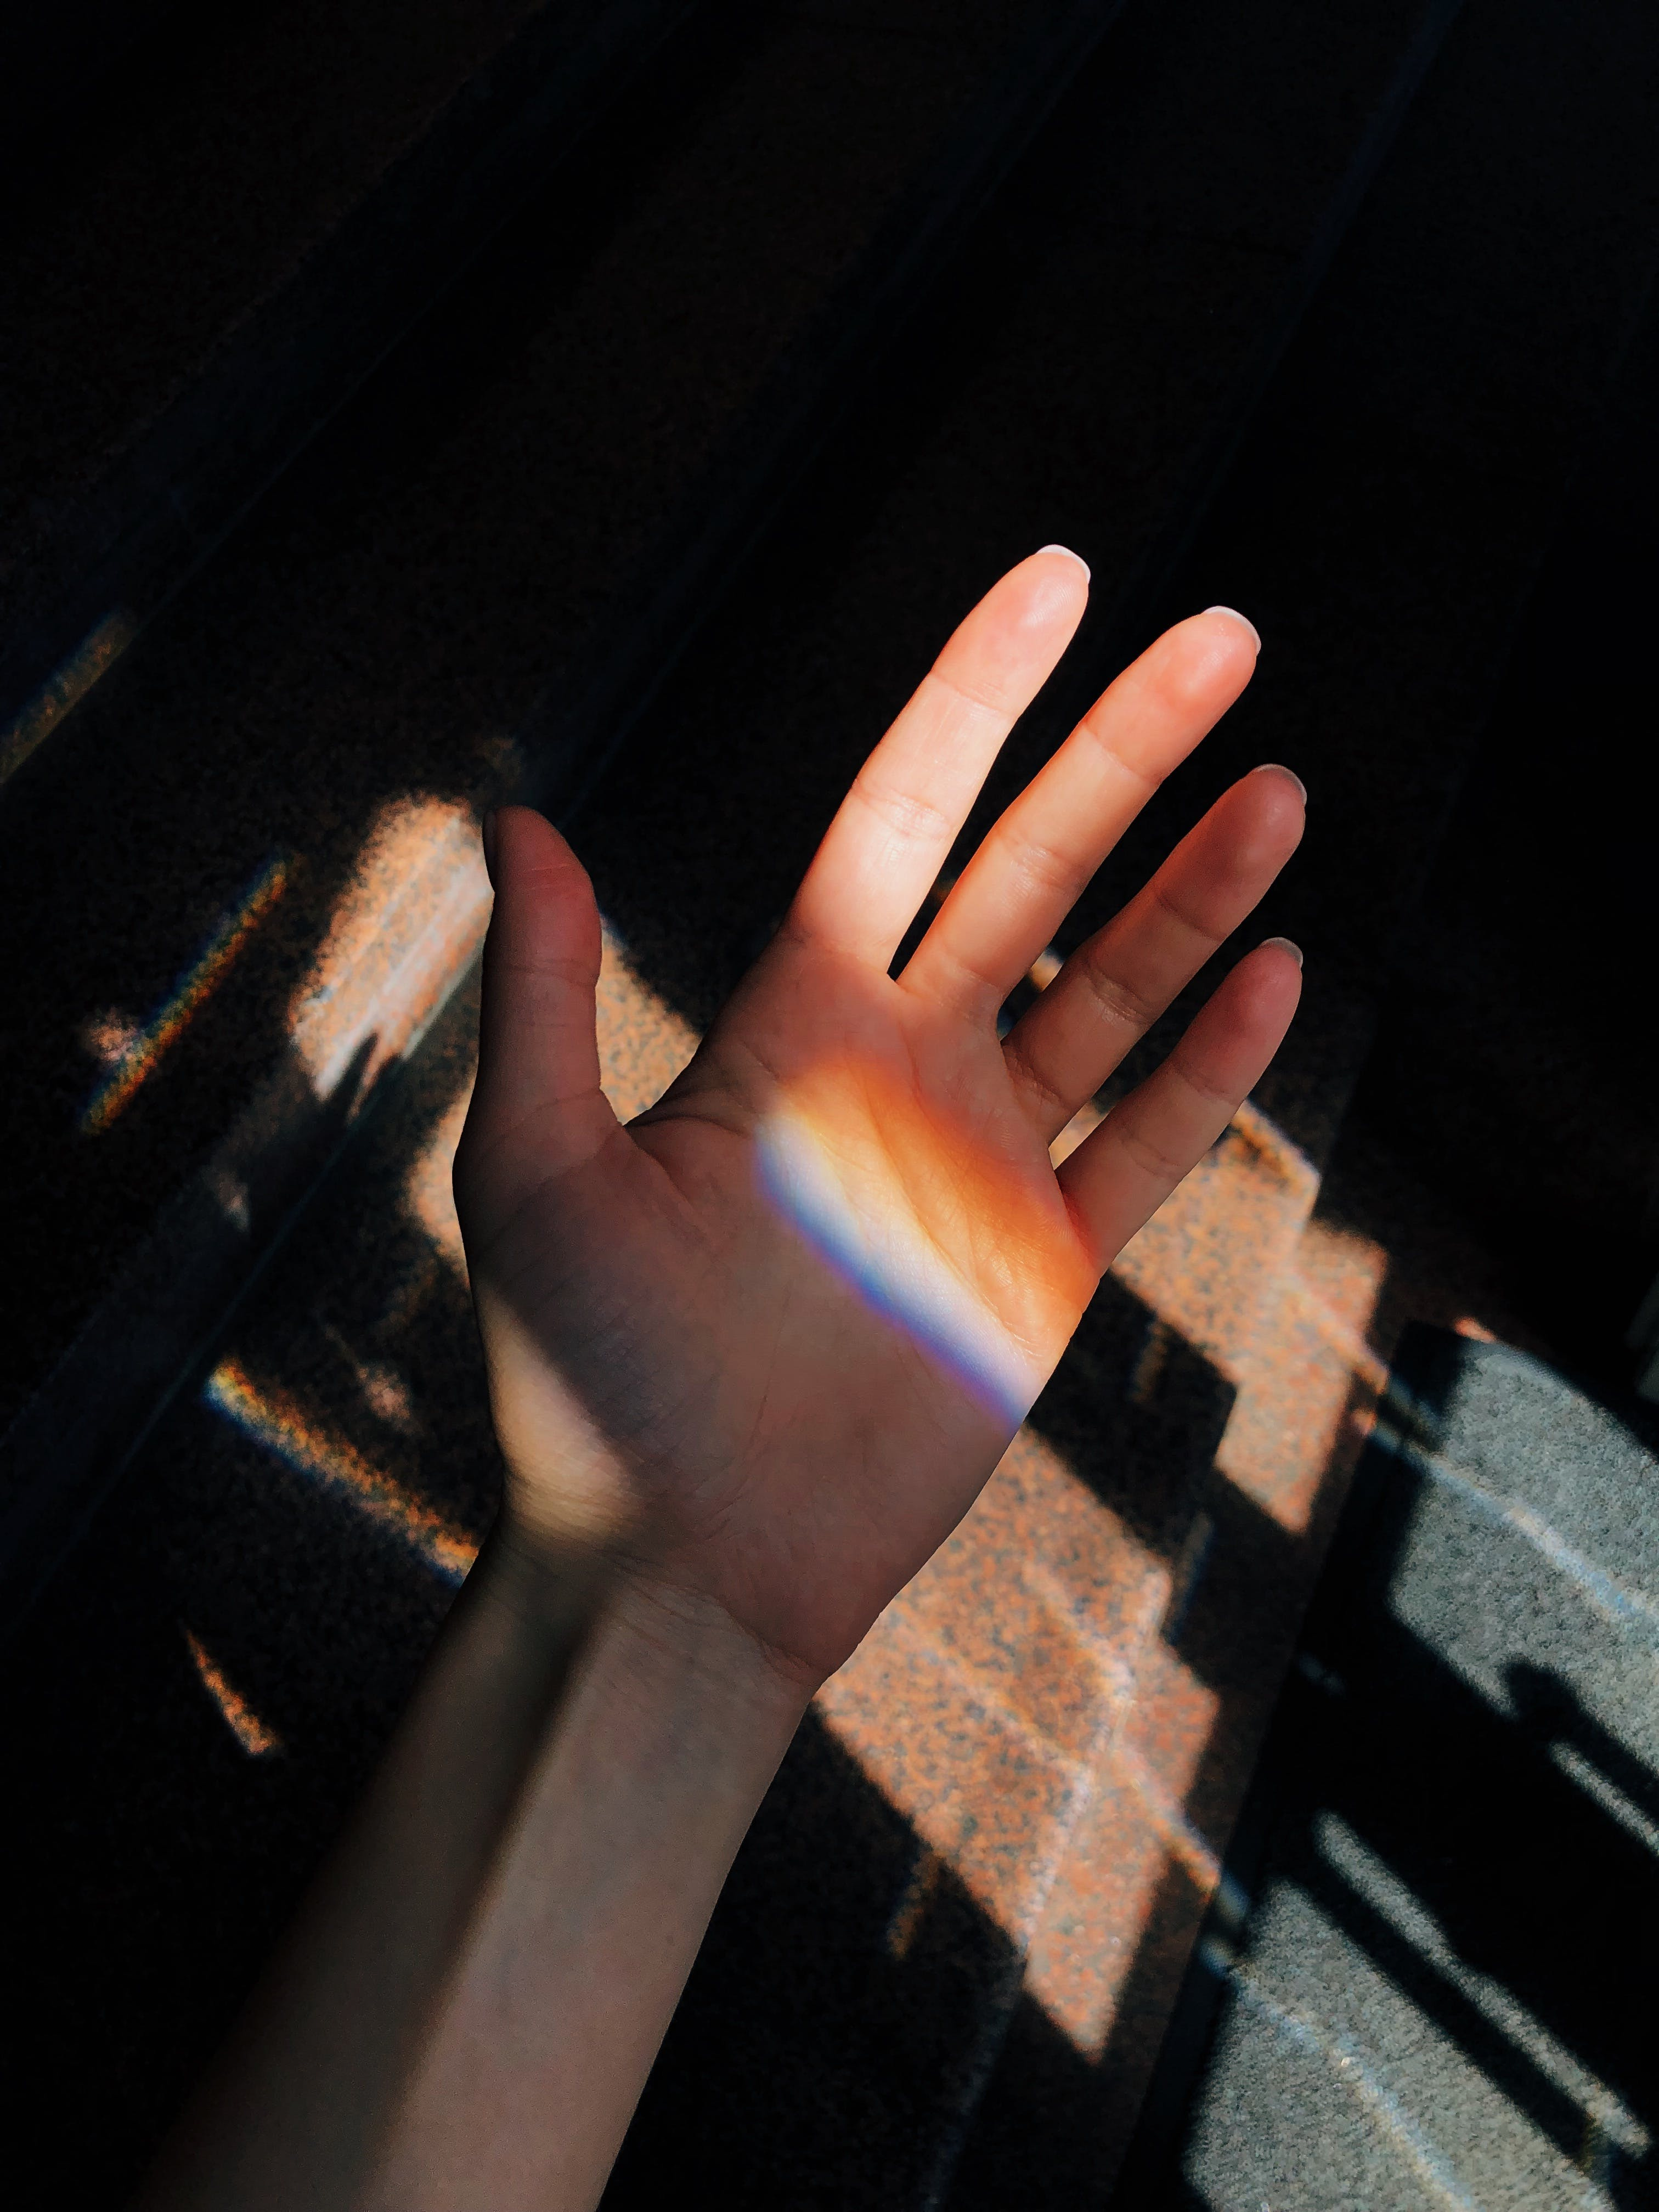 Left Person's Palm Near Brown Metal Panel